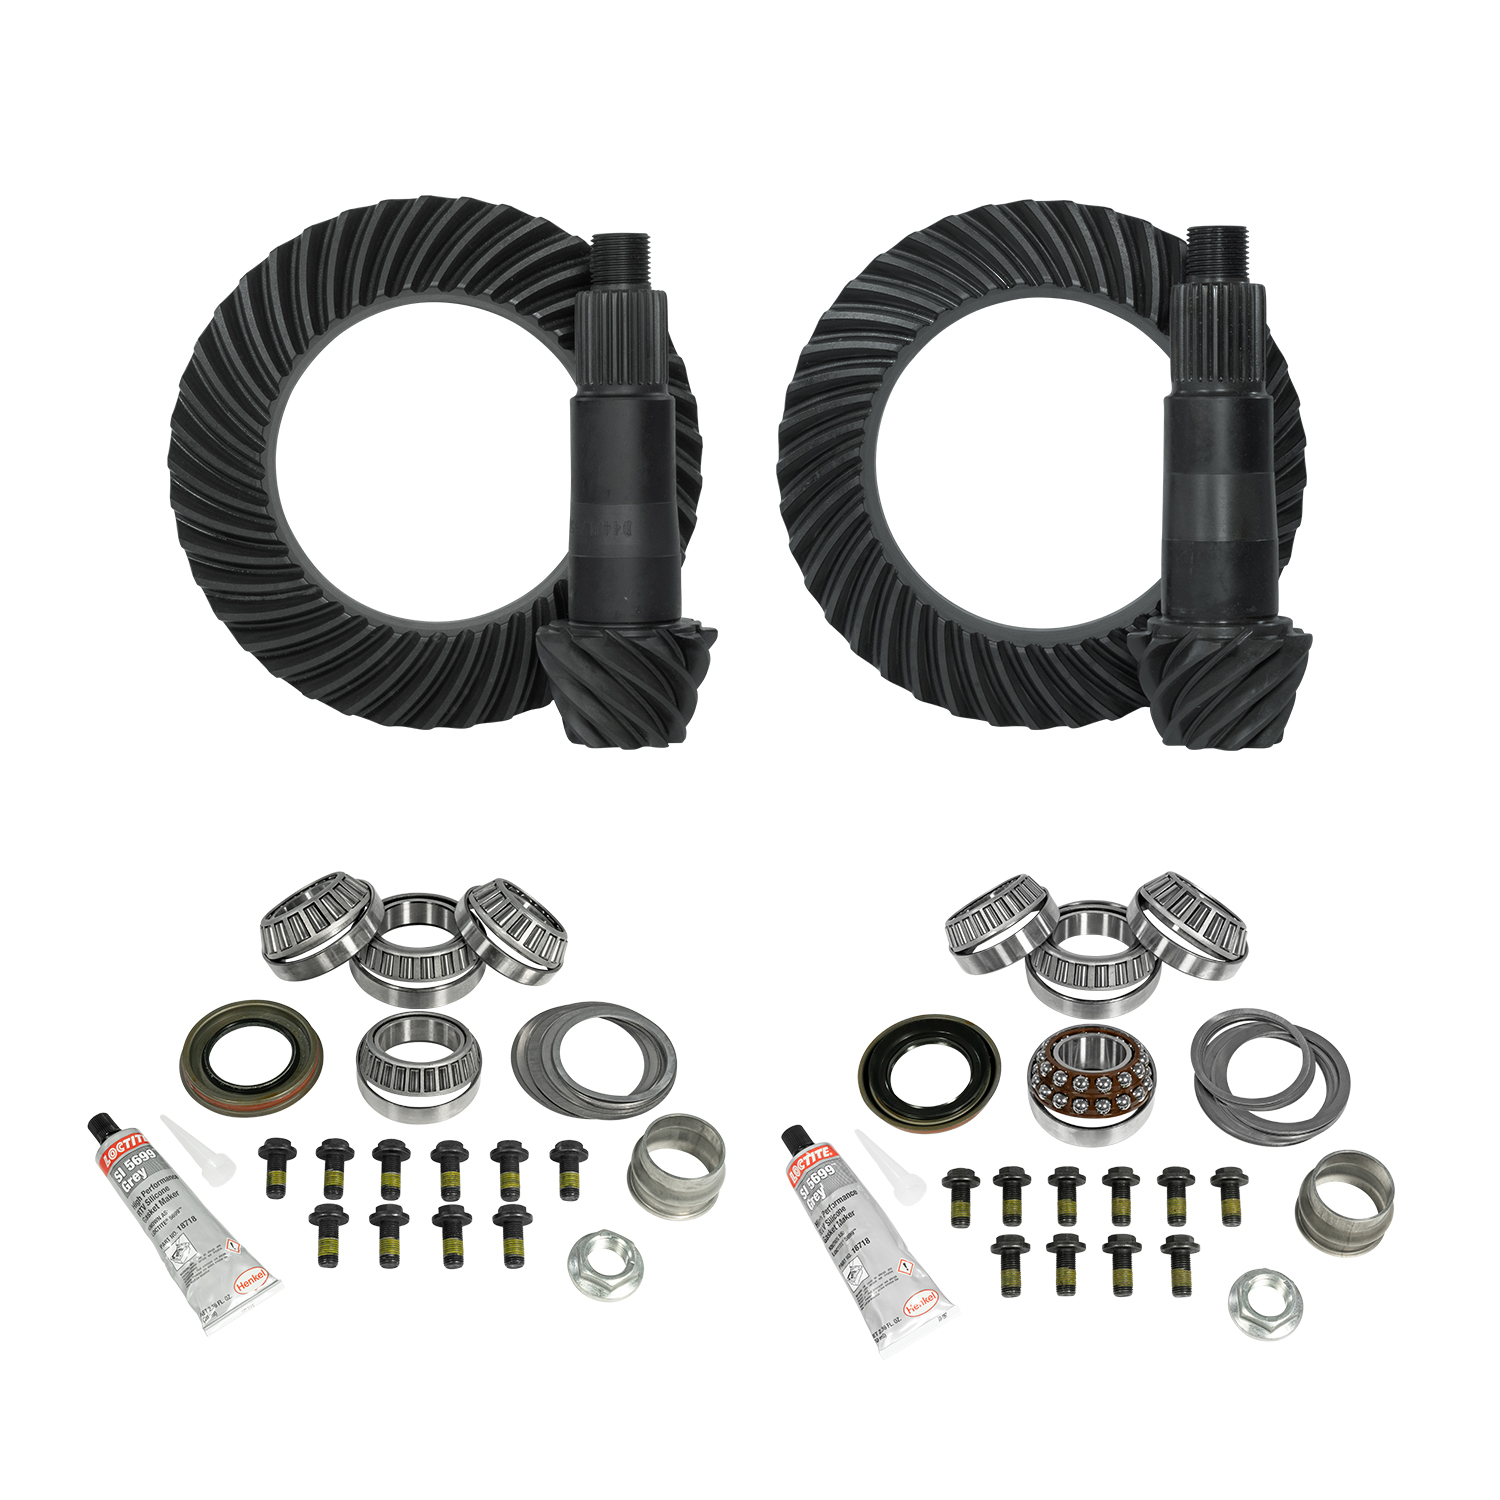 YGK070 - Yukon Complete Gear and Kit Pakage for JL and JT Jeep Rubicon, D44 Rear & D44 Front, 5:38 Gear Ratio